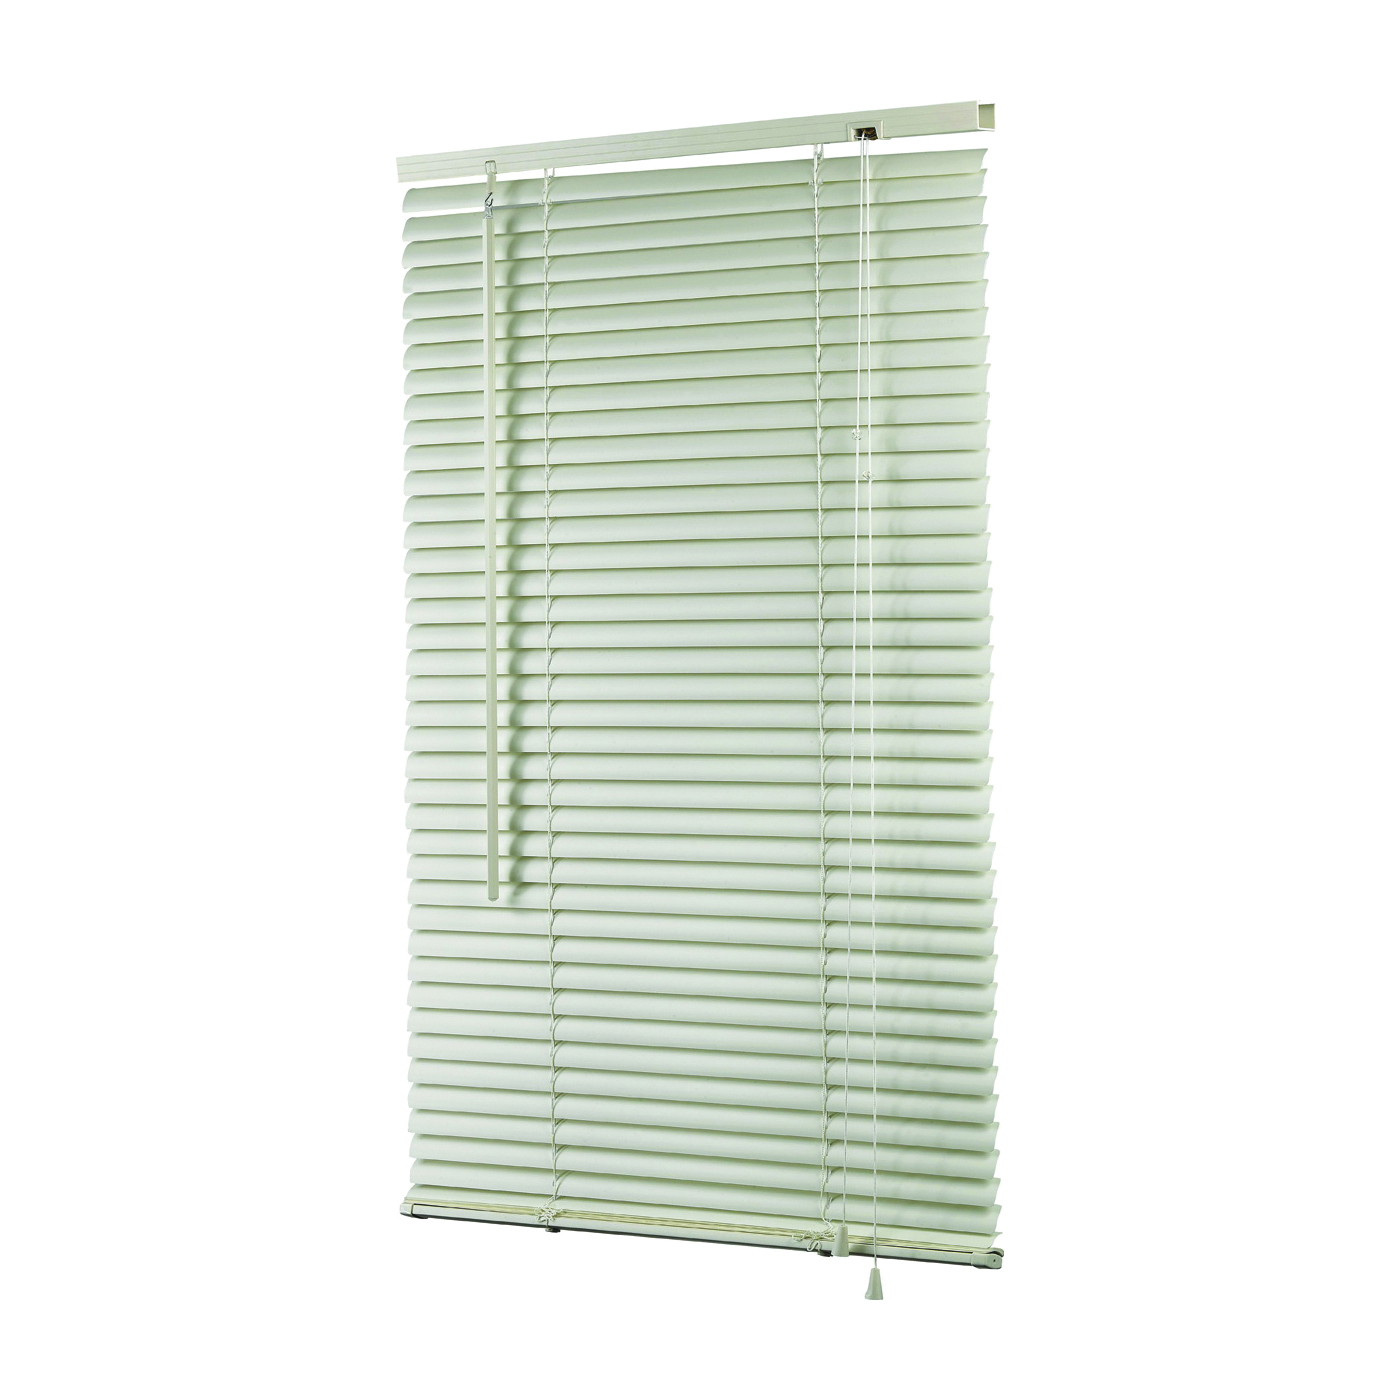 Picture of Simple Spaces MBV-39X64-A3L Mini-Blinds, 64 in L, 39 in W, Vinyl, Alabaster